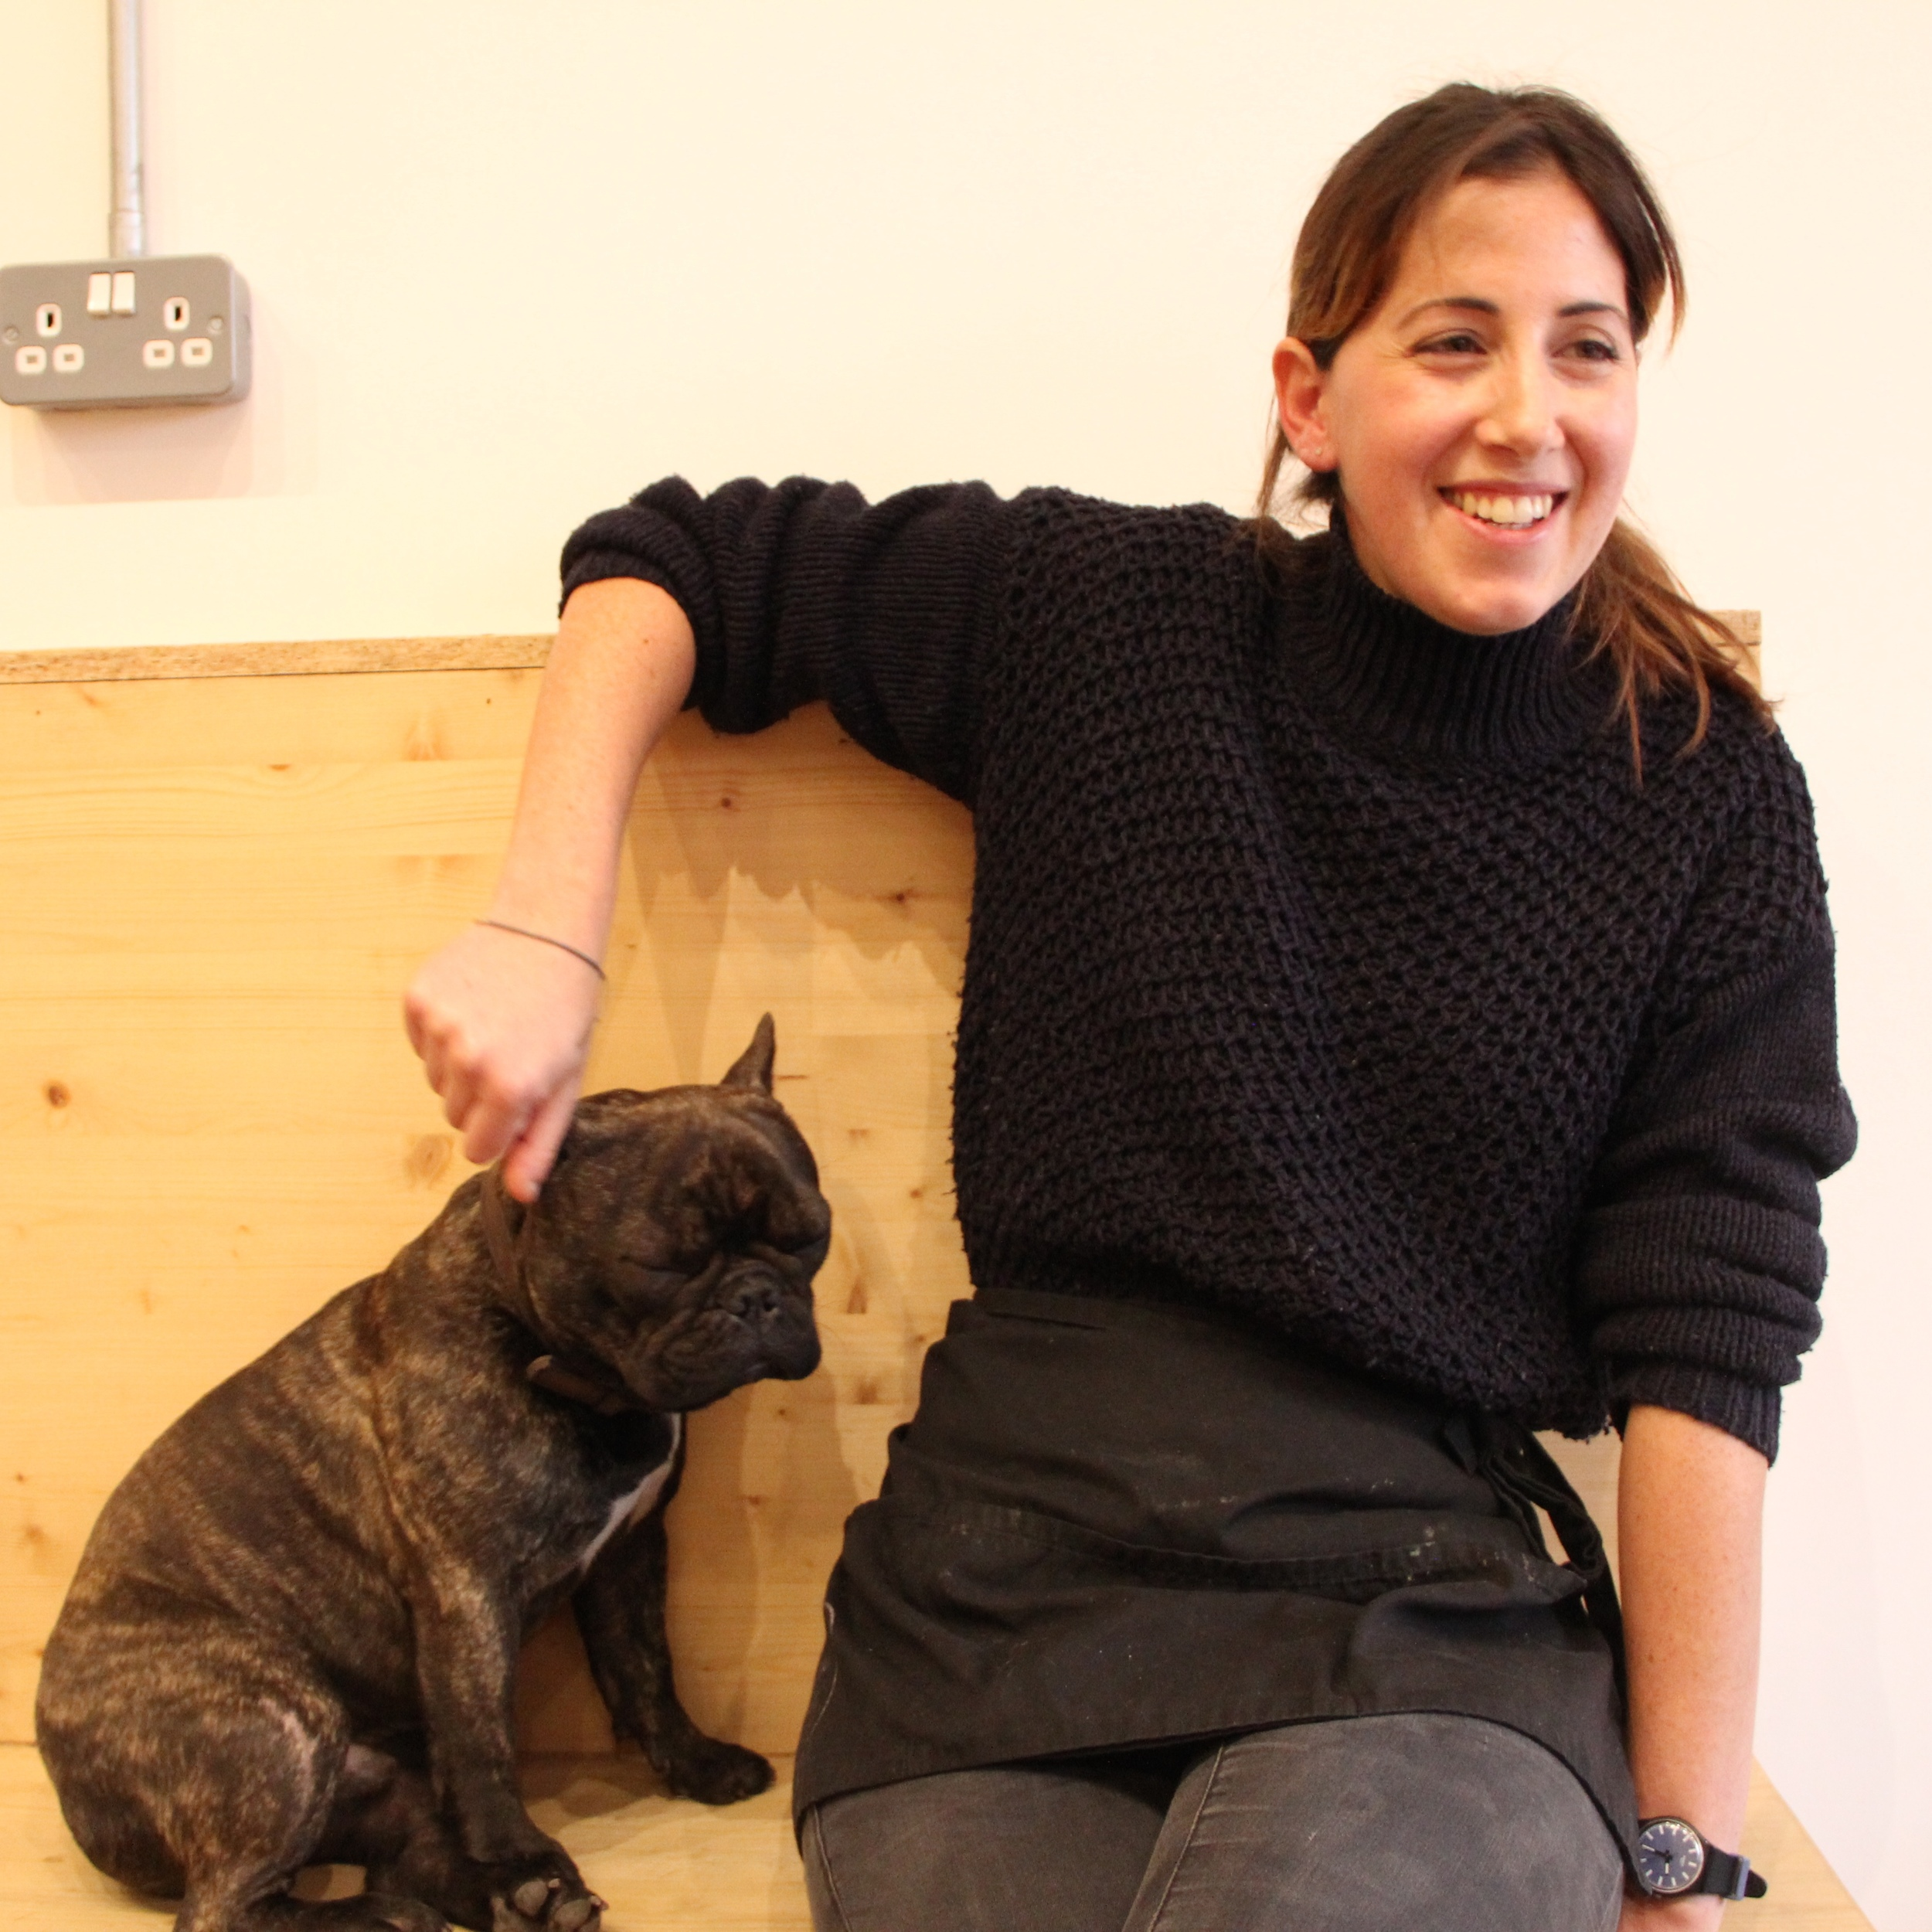 Owner Sophie McMillan who runs the cafe with help from her French bulldog Maurice